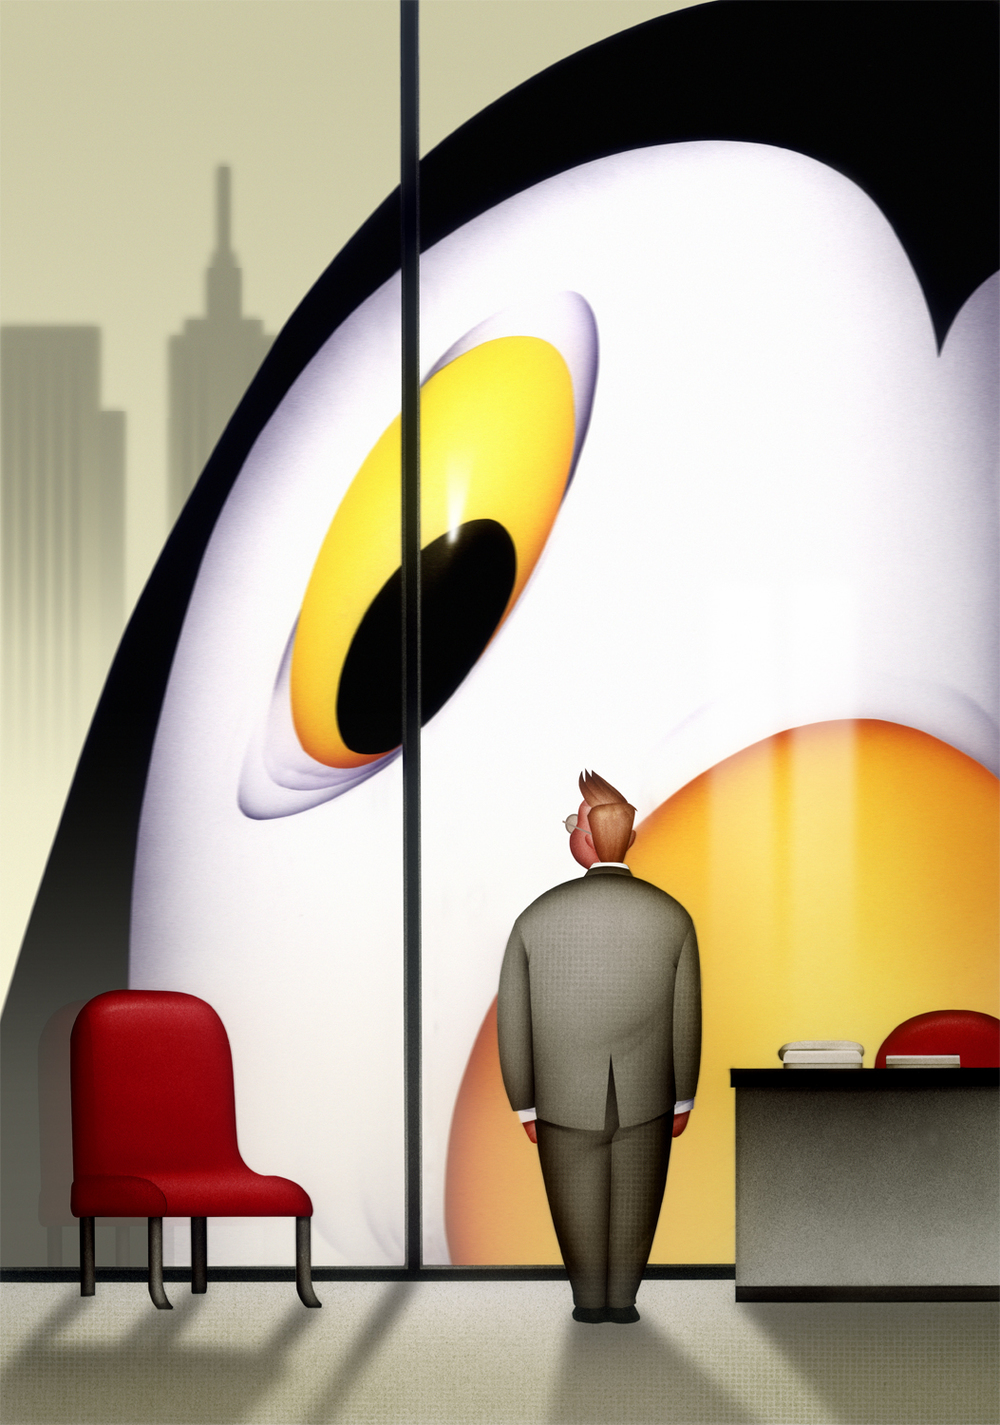 King Penguin, Infoworld